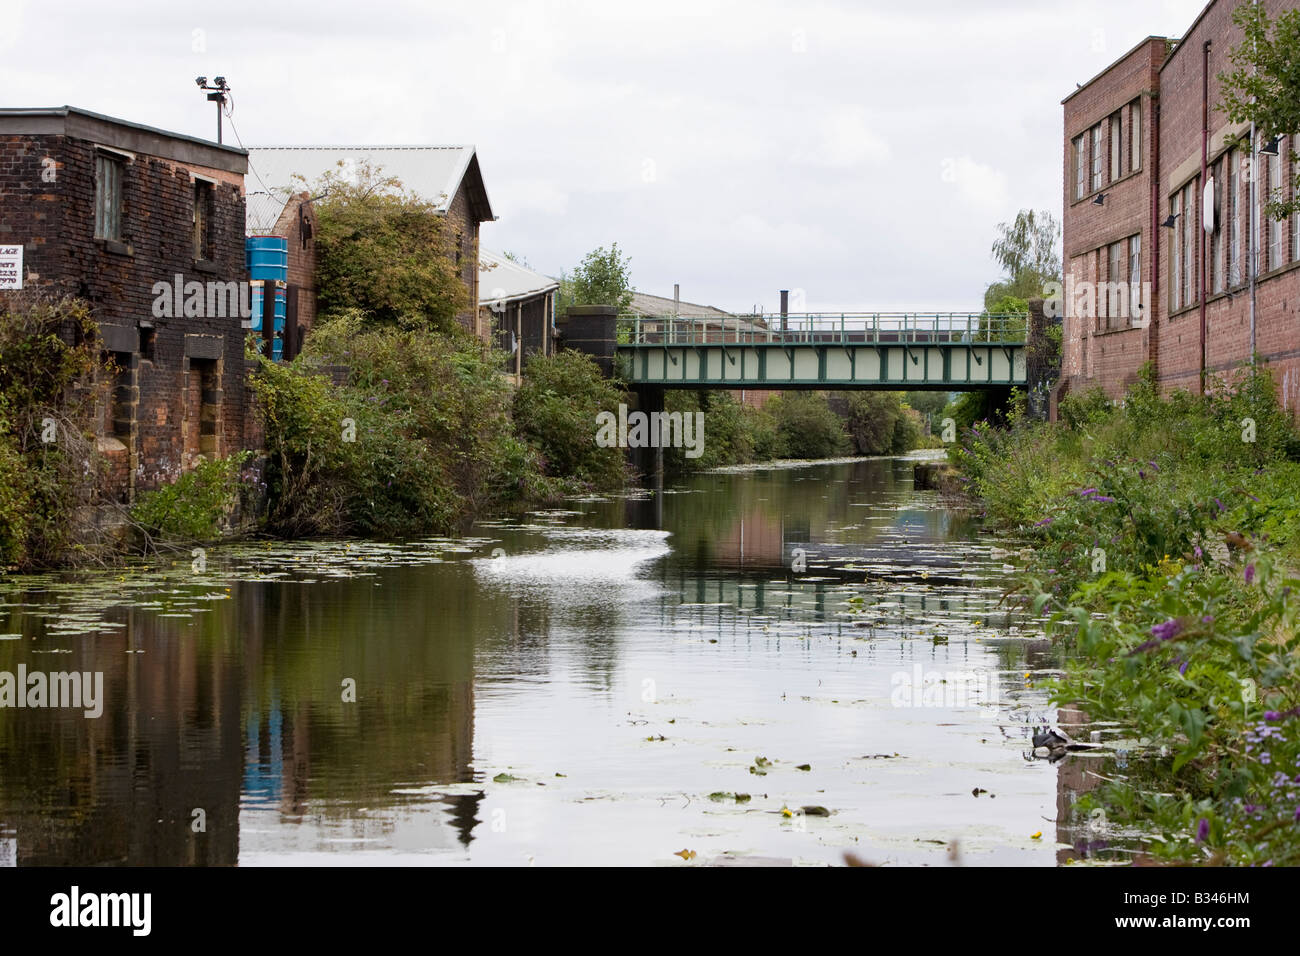 Sheffield and Tinsley Canal featured in the film The Full Monty - Stock Image